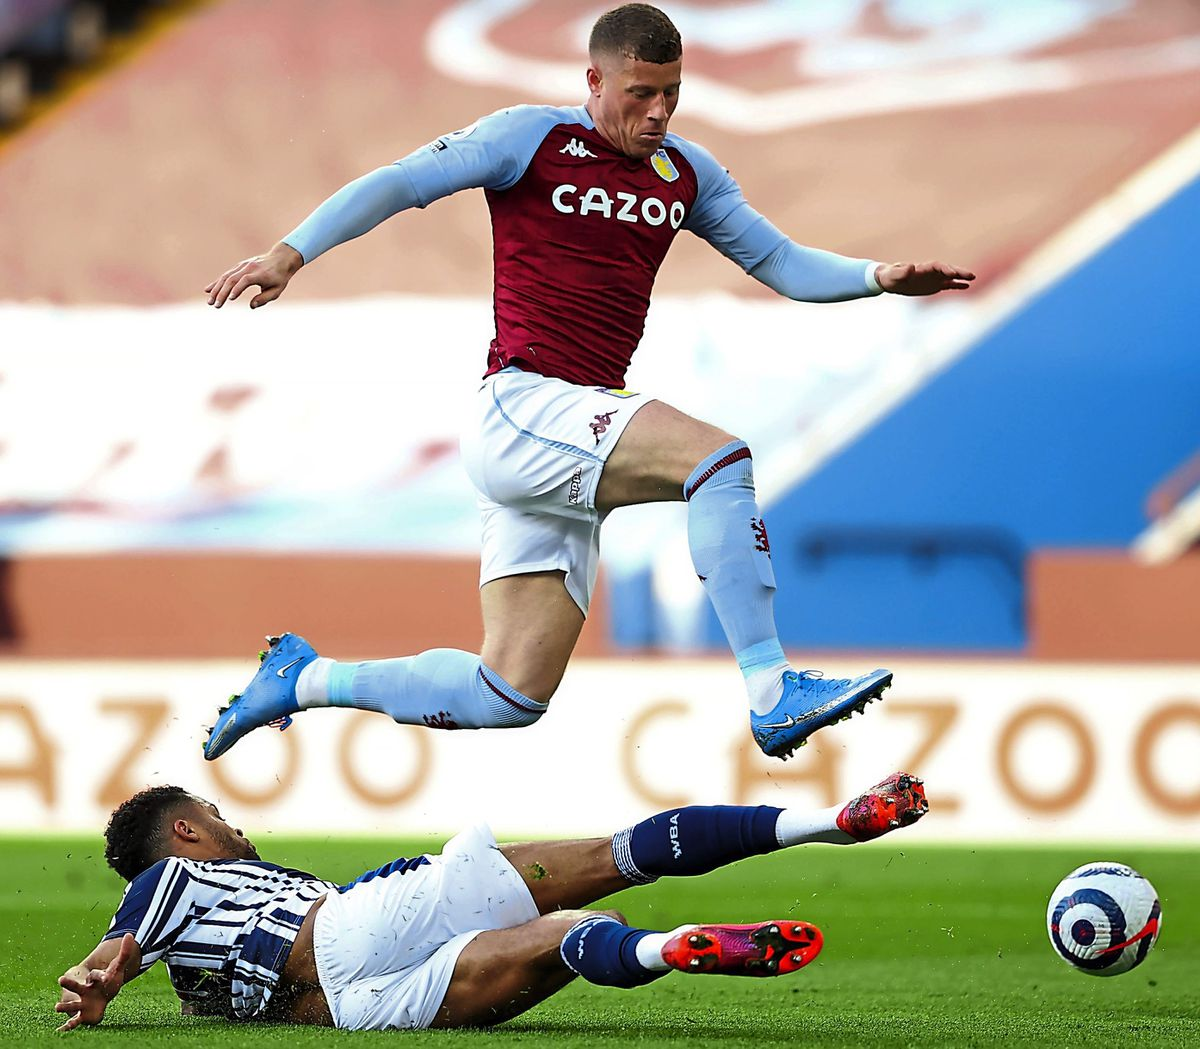 Ross Barkley has been showing some improved performances for Villa recently